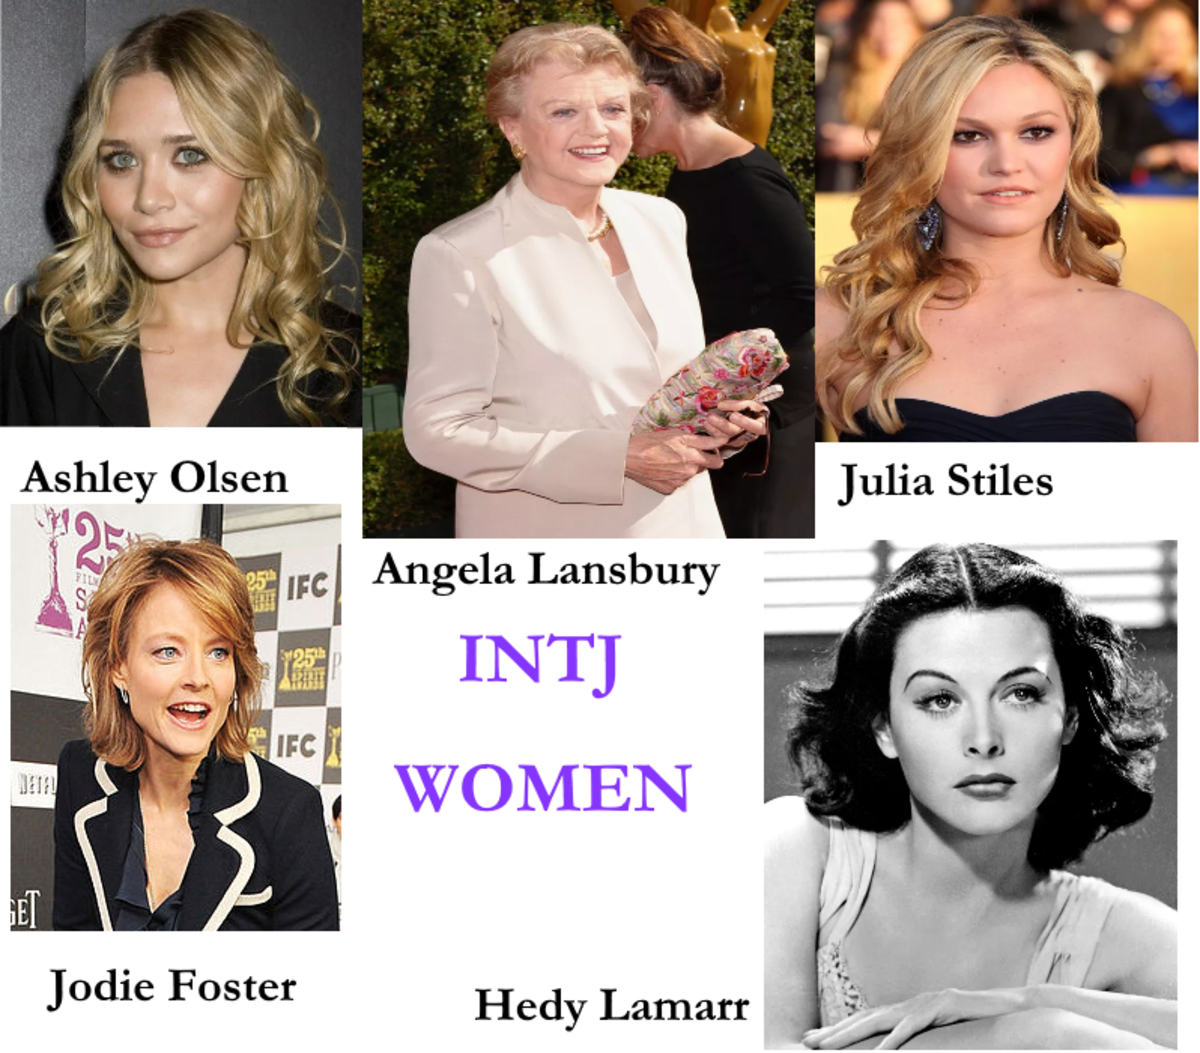 INTJ Women: A Rare Myers-Briggs Category | Owlcation